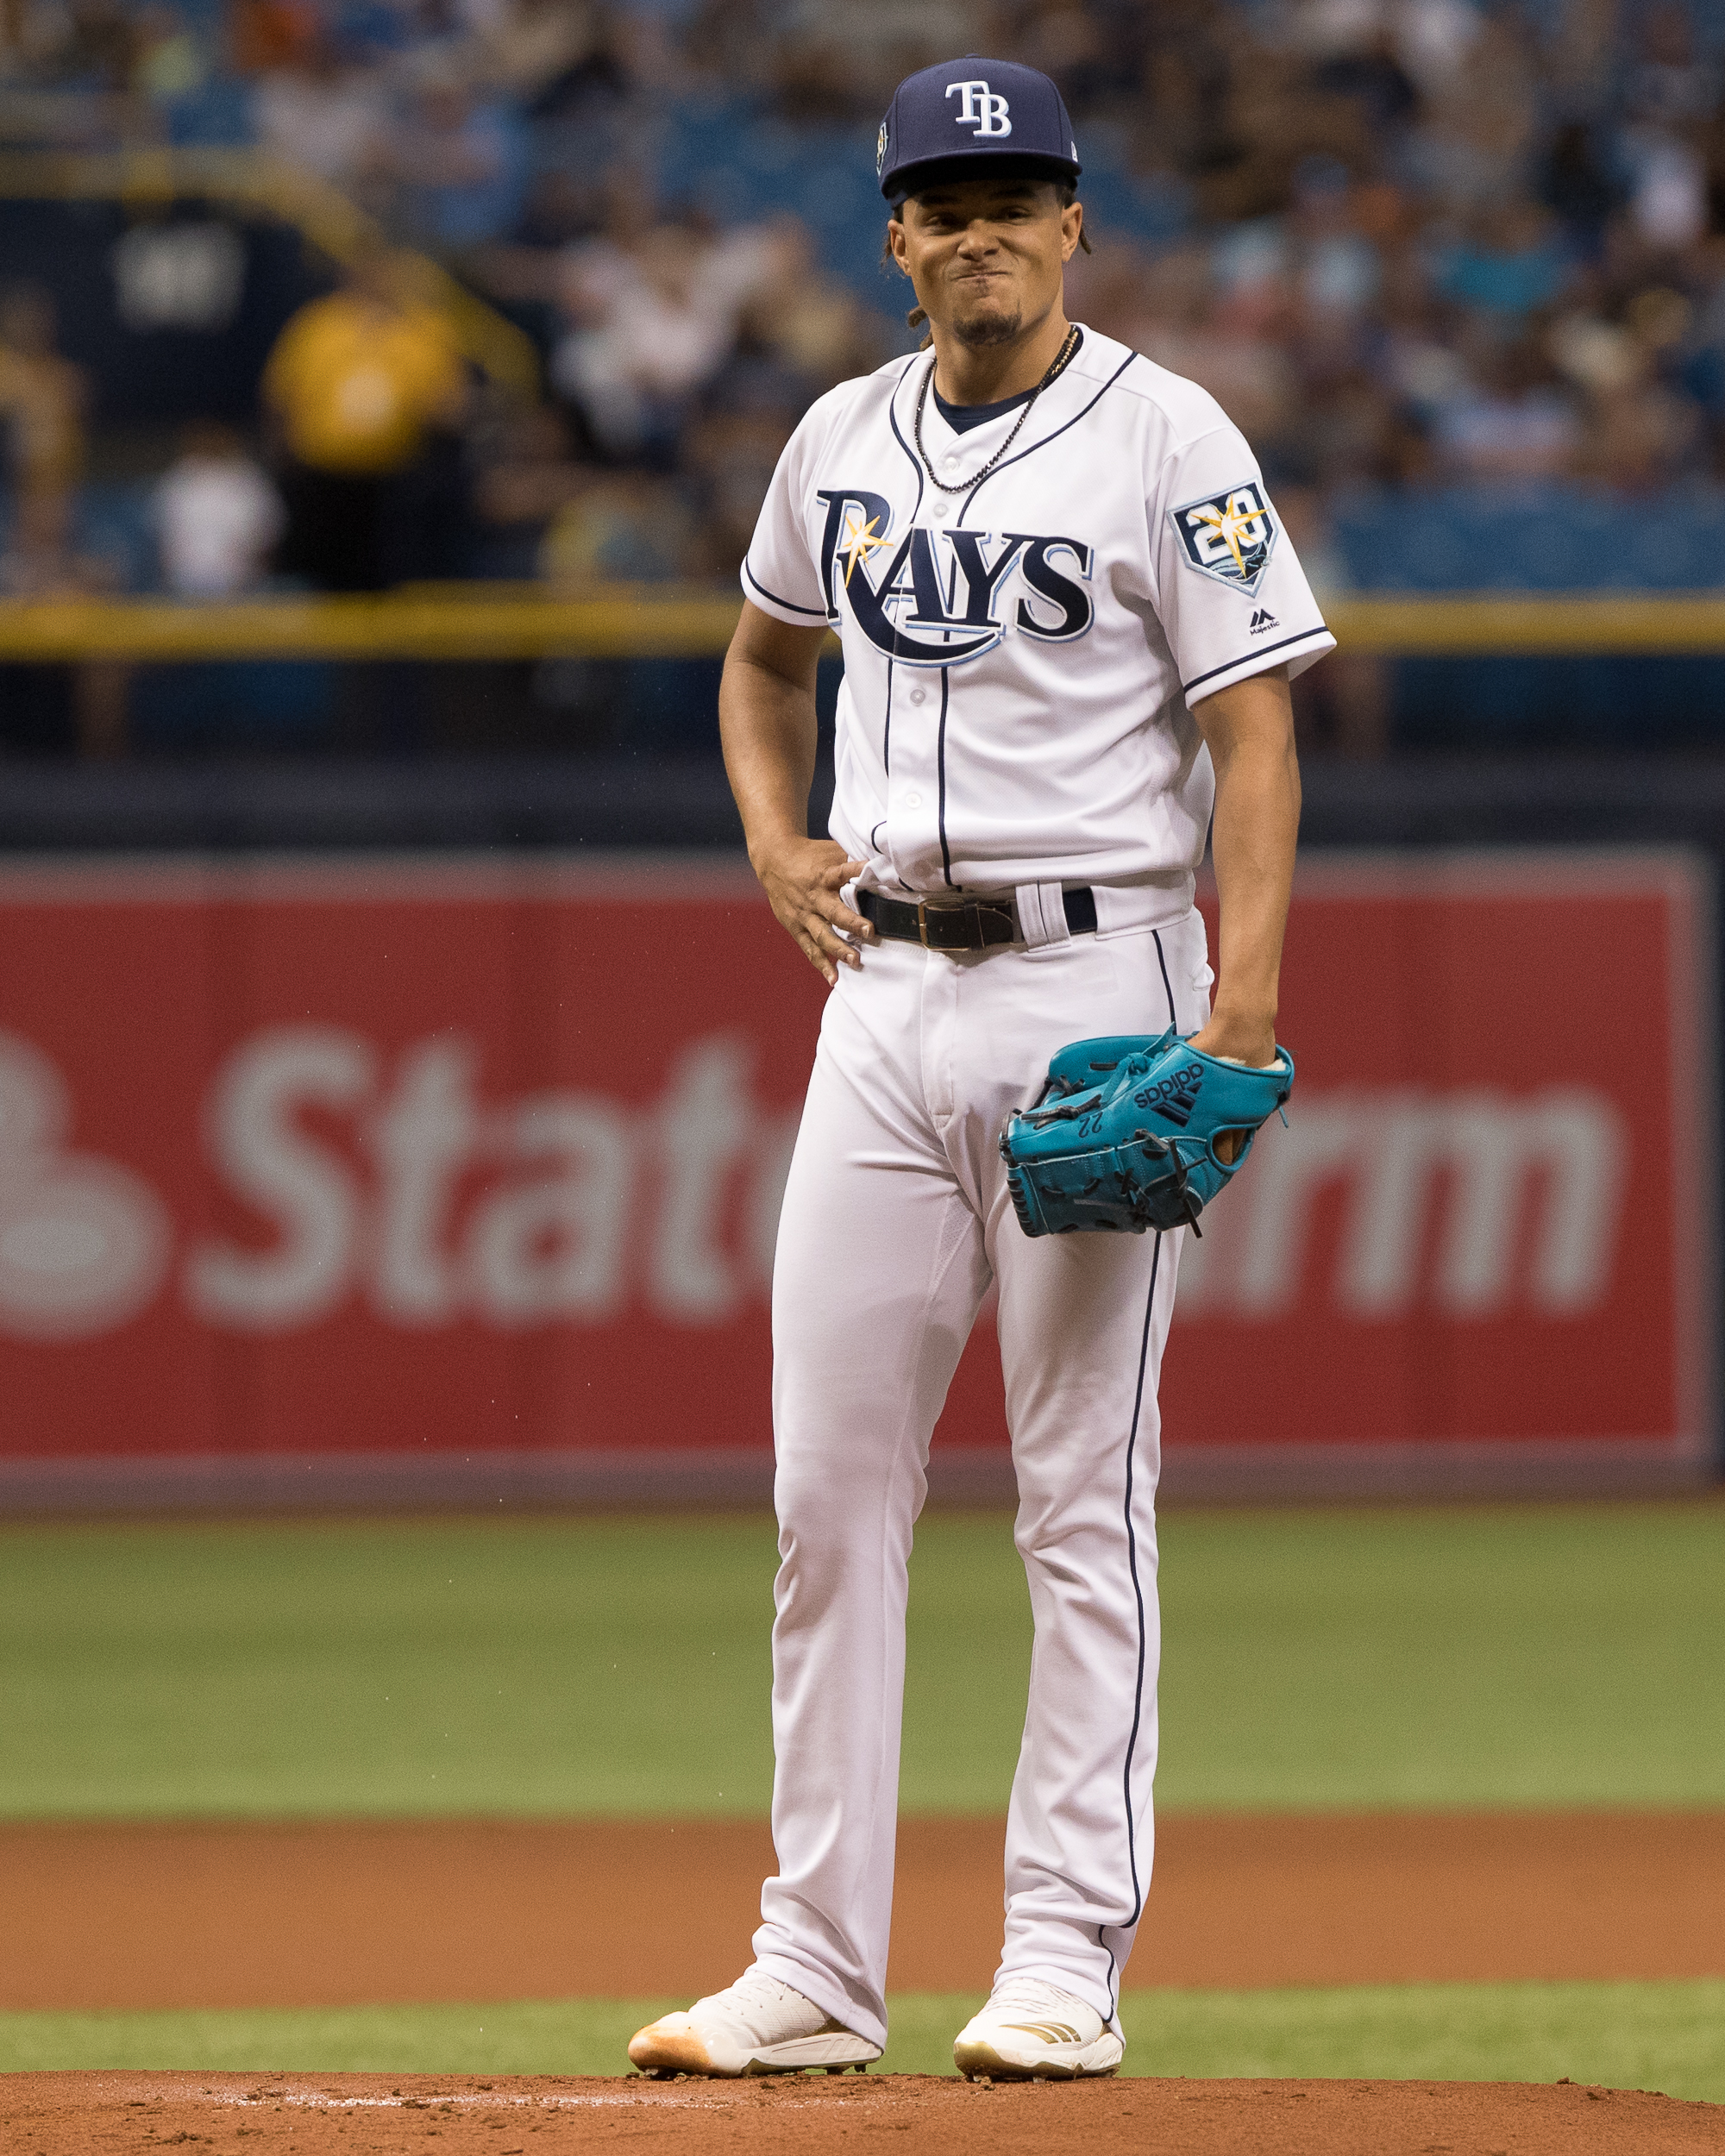 The look on Chris Archer's face says it all./STEVEN MUNCIE